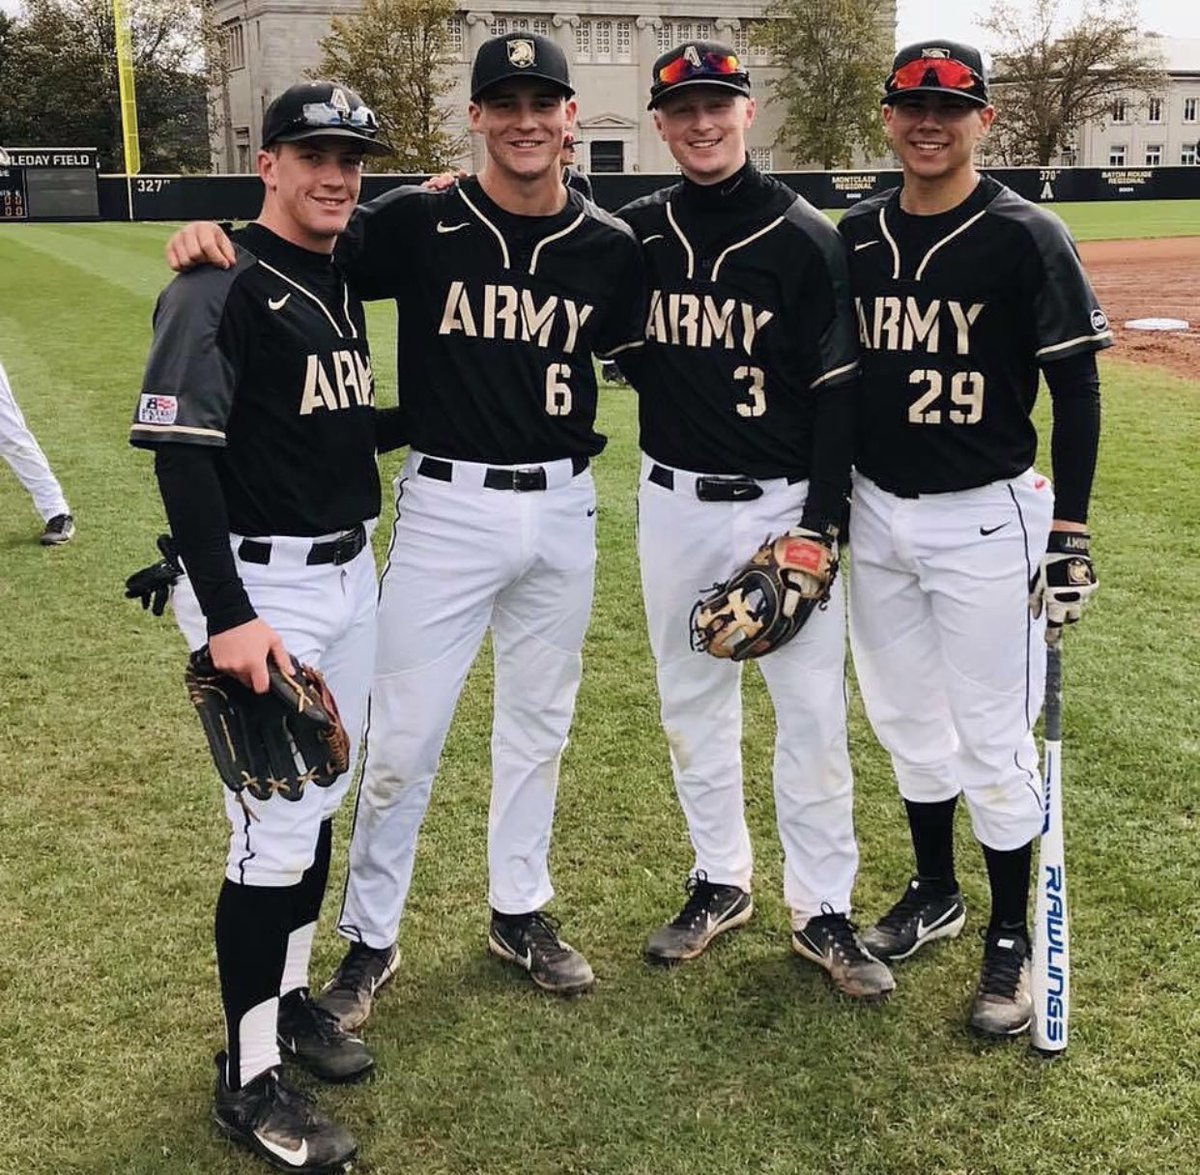 Congrats to @ArmyWP_Football on their victory today over Navy. S/O to two former HitDogs @titus2312 and @mcbc1414 currently playing for @ArmyWP_Baseball.  #selfless #ServiceToCountry. <br>http://pic.twitter.com/TPzRt8YFP0